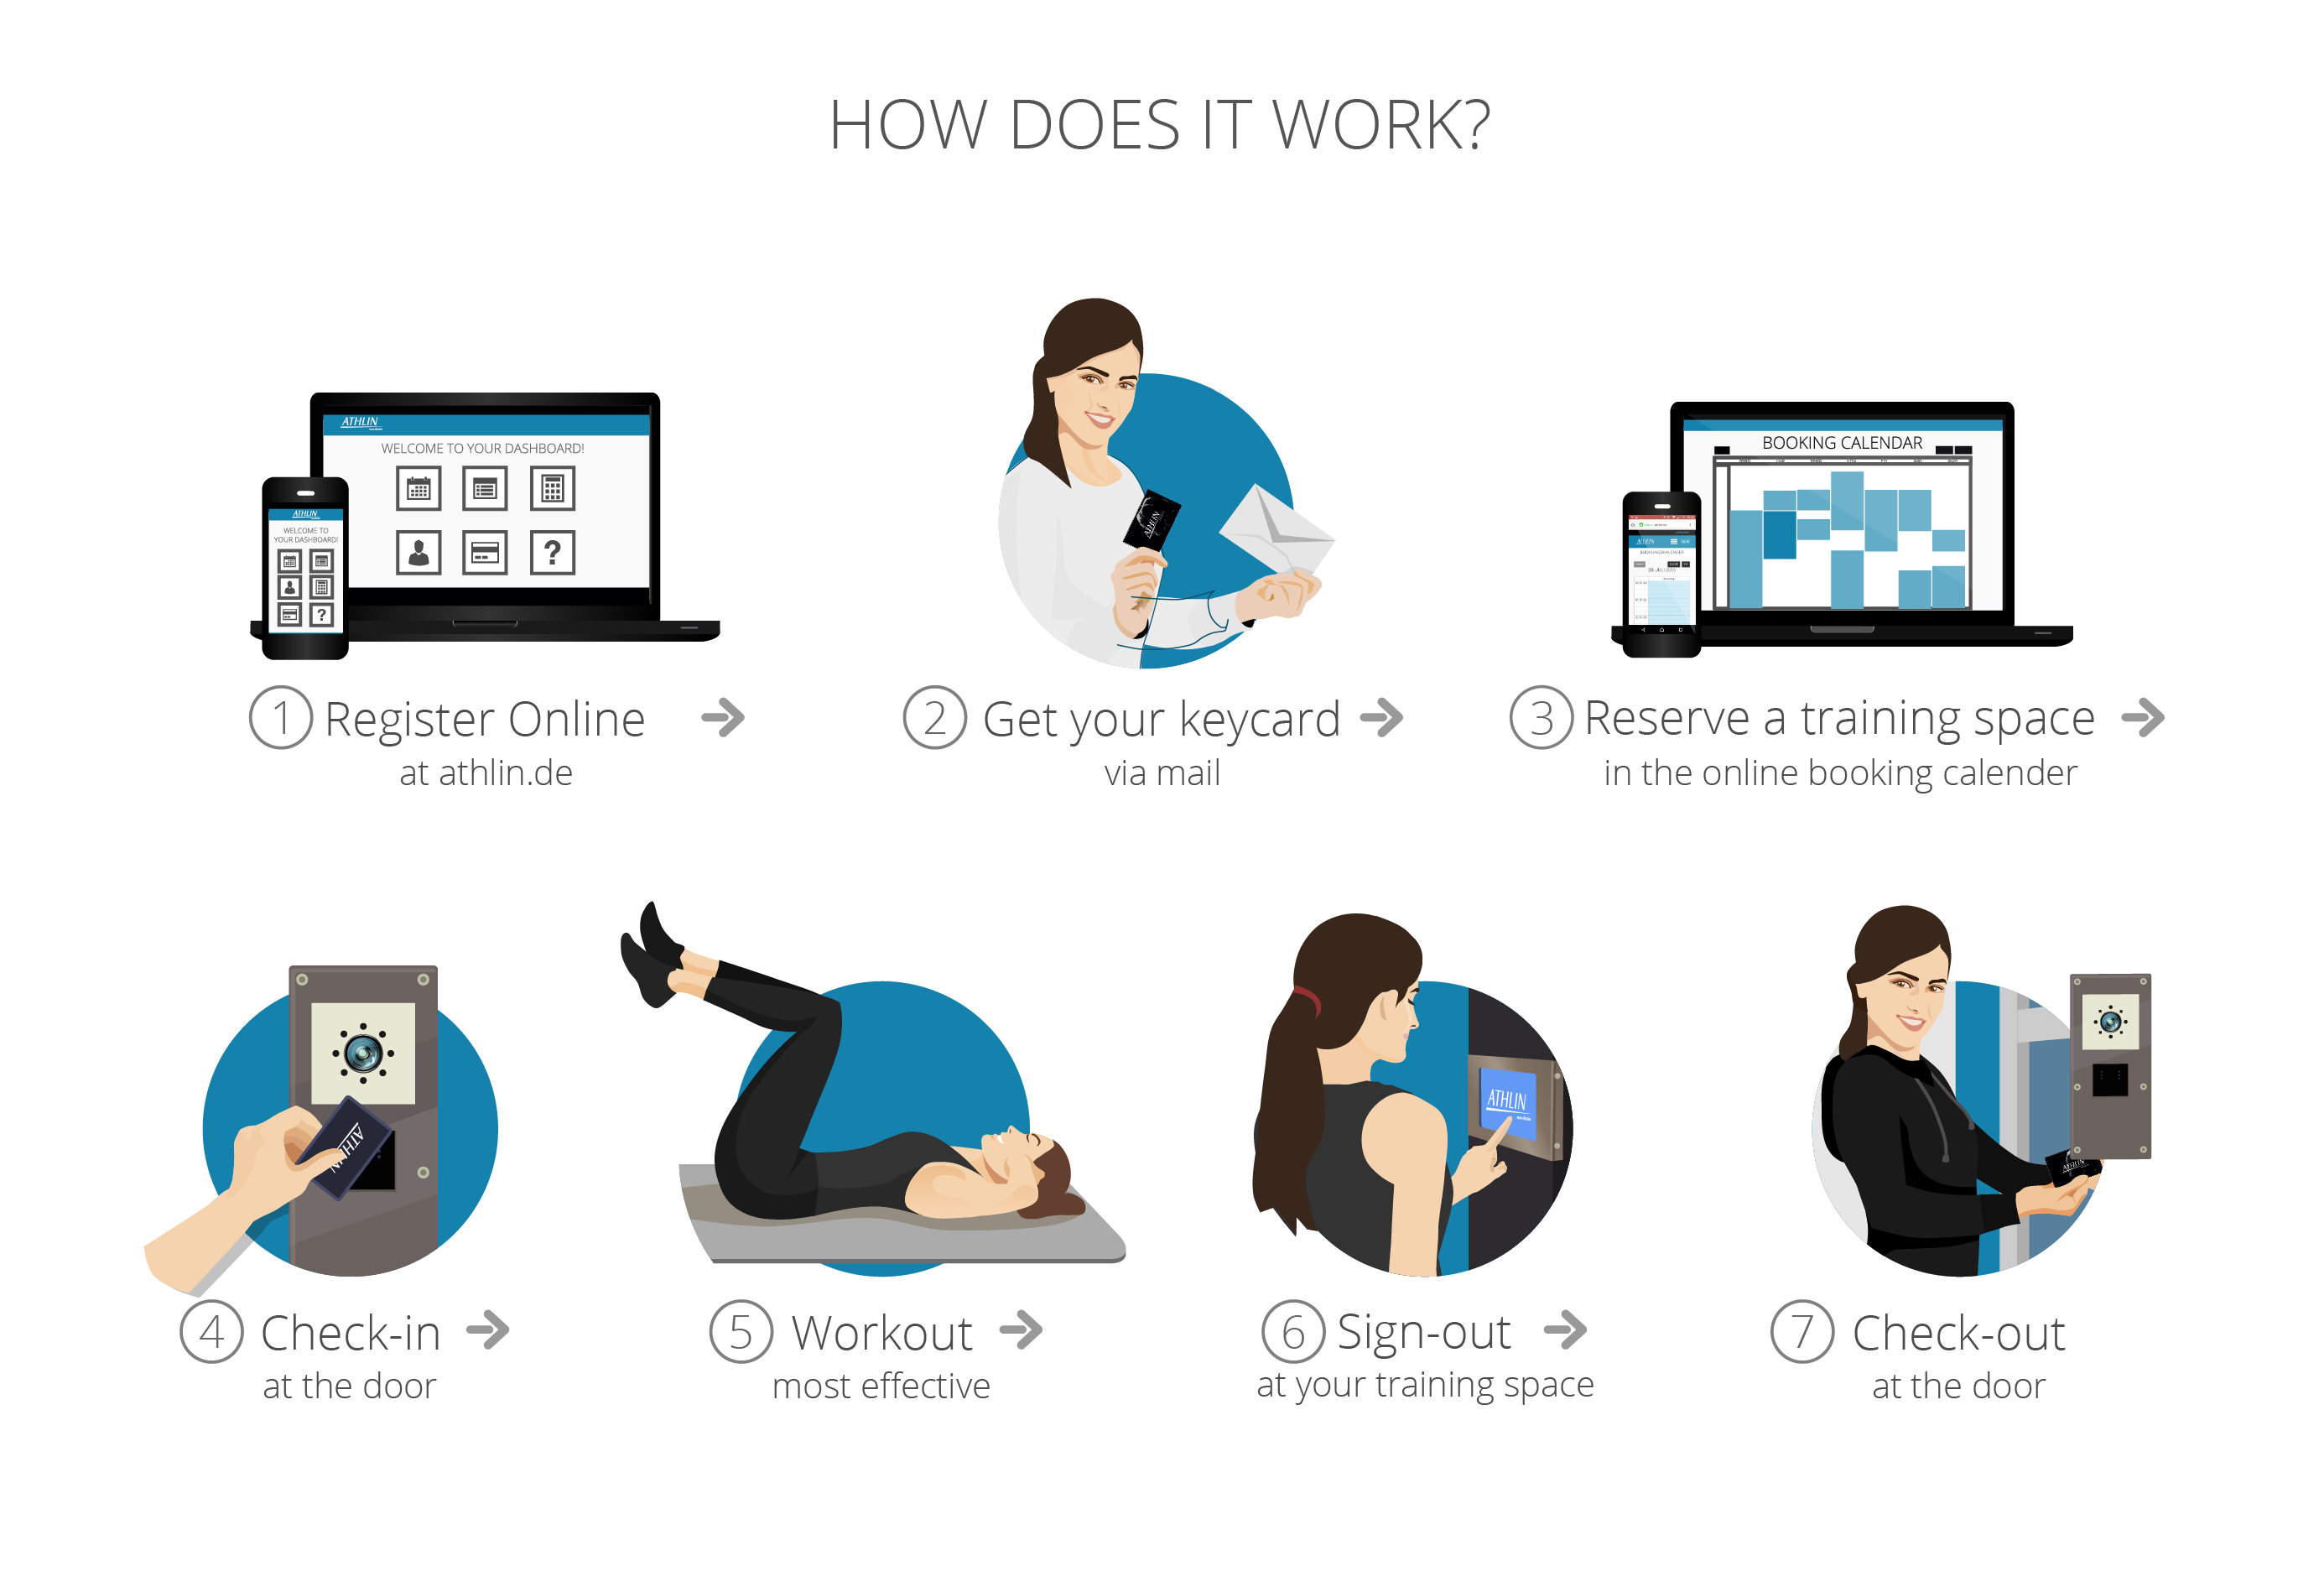 """Create a """"how does it work?""""-infographic for a new startup and show us your amazing design skills!"""